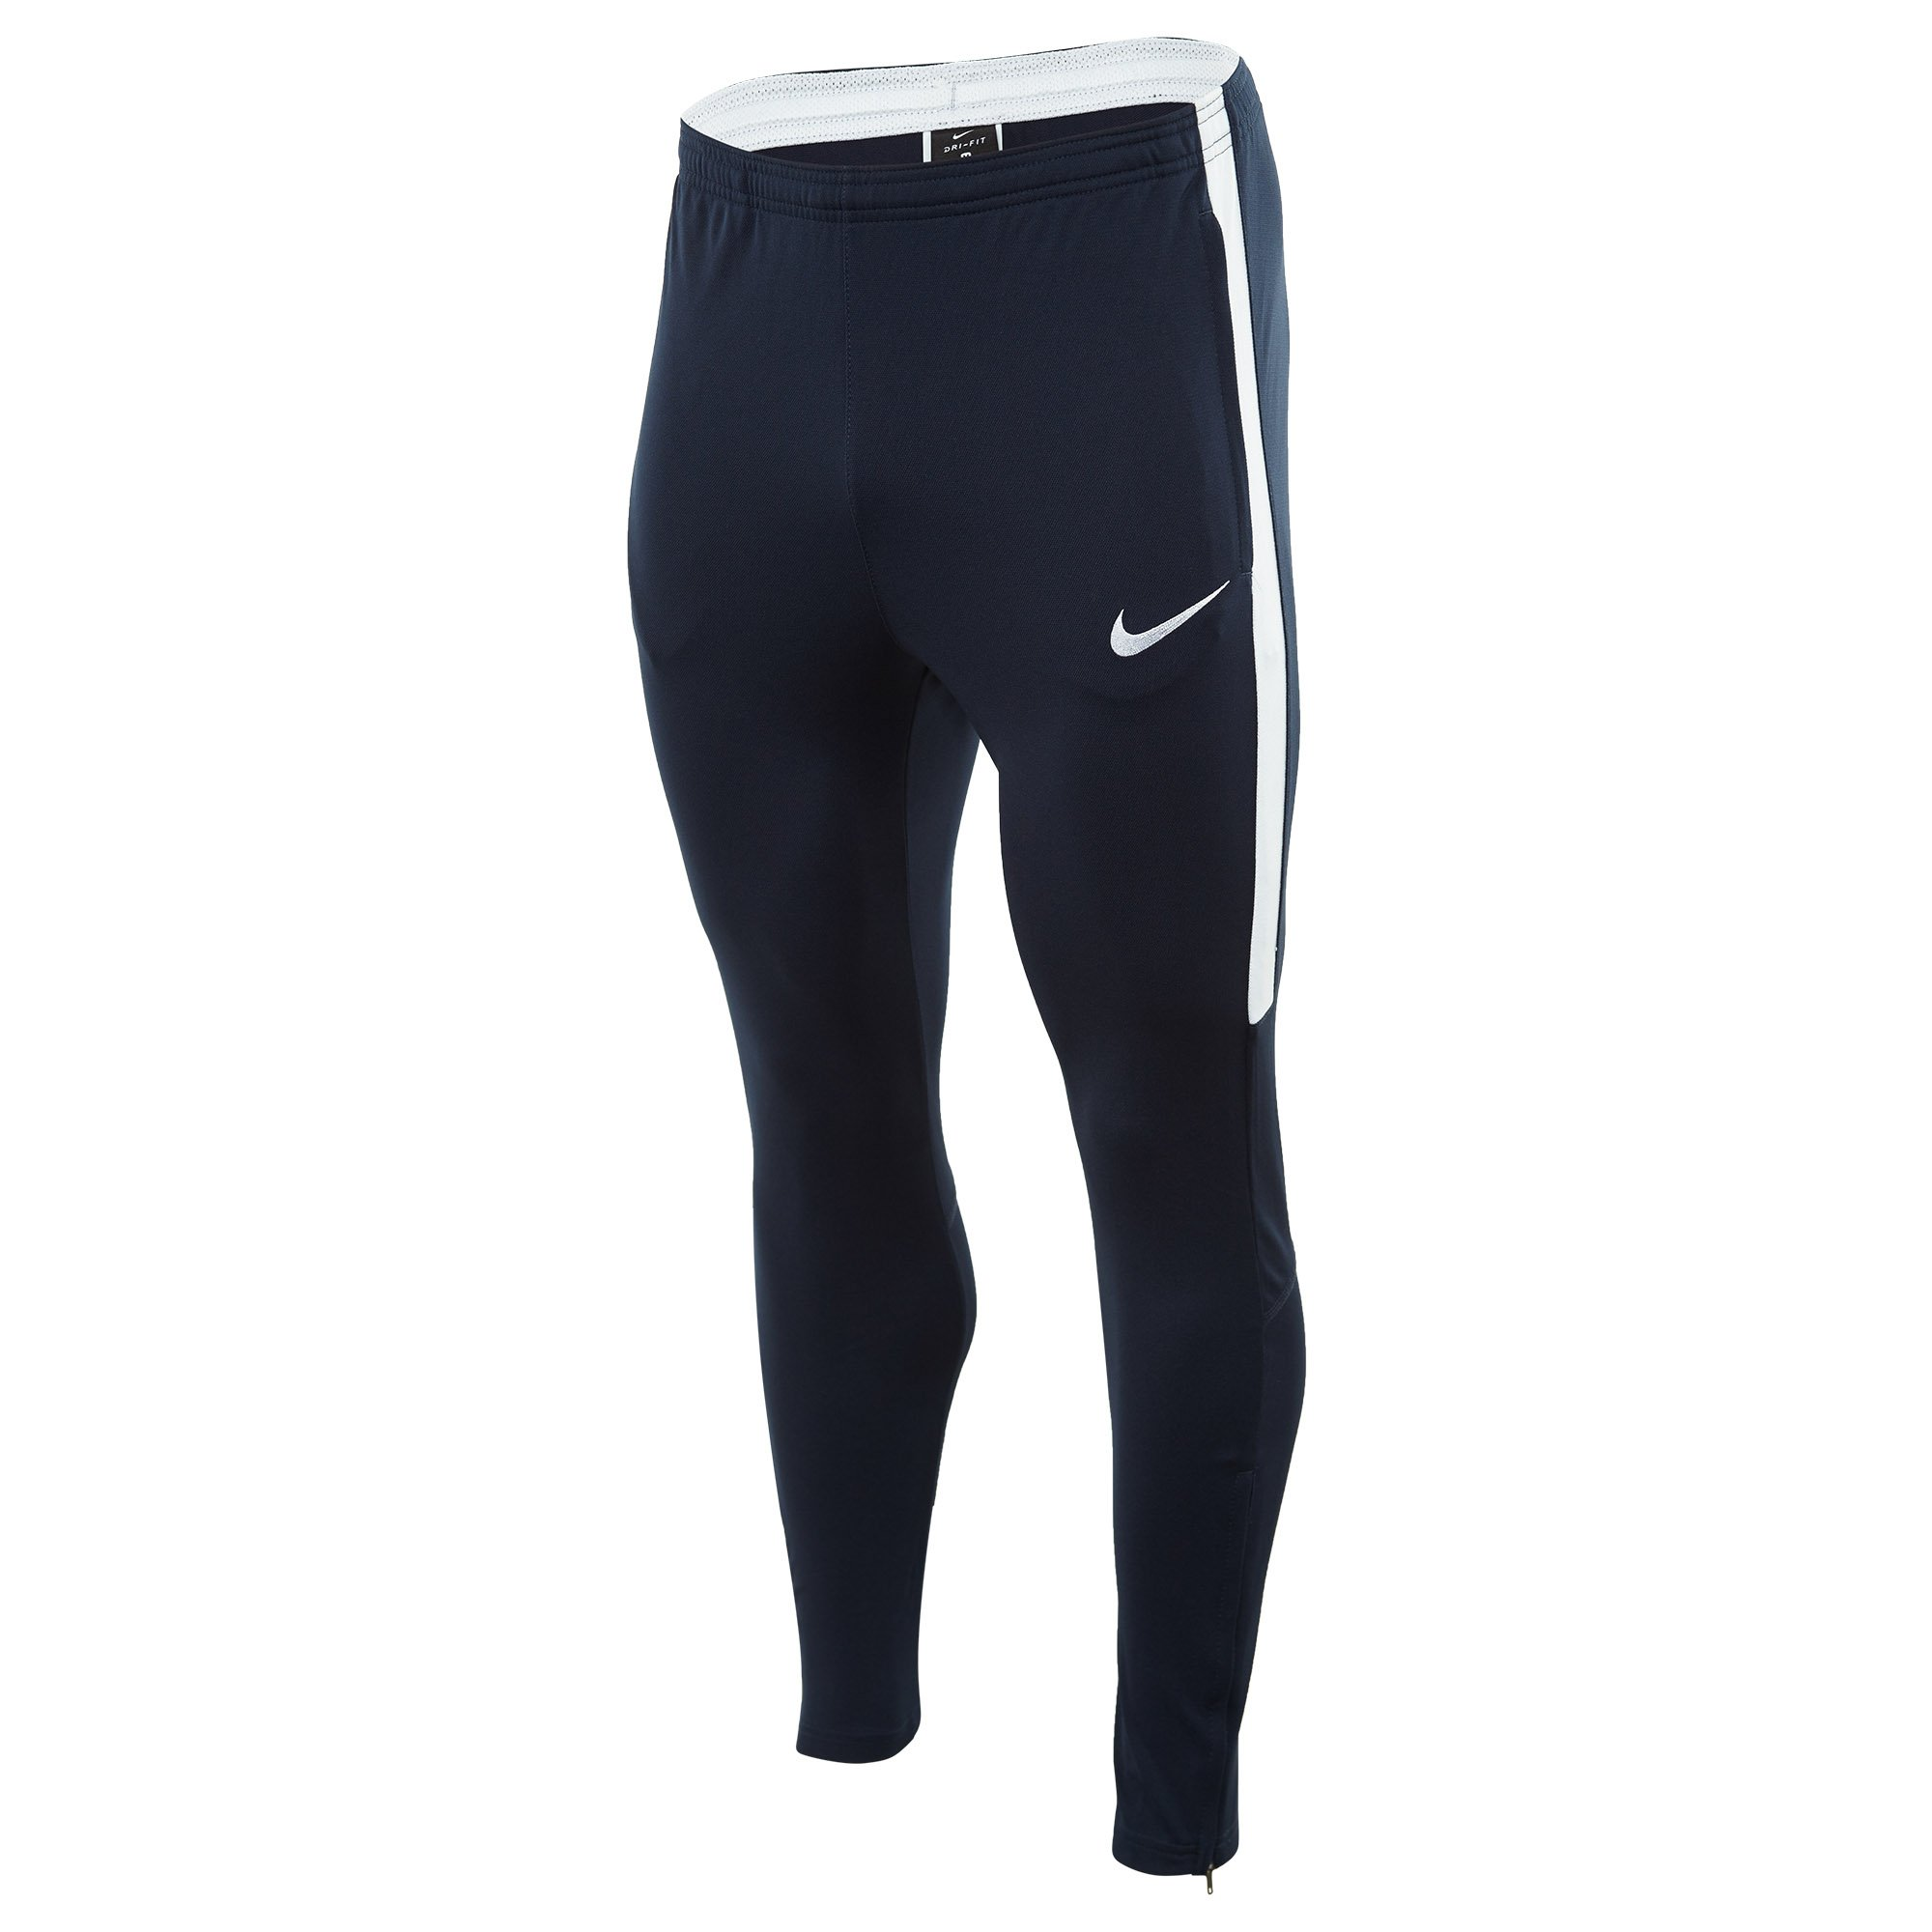 NIKE Dry Training Academy Men's Tracksuit (S, Obsidian/White) by NIKE